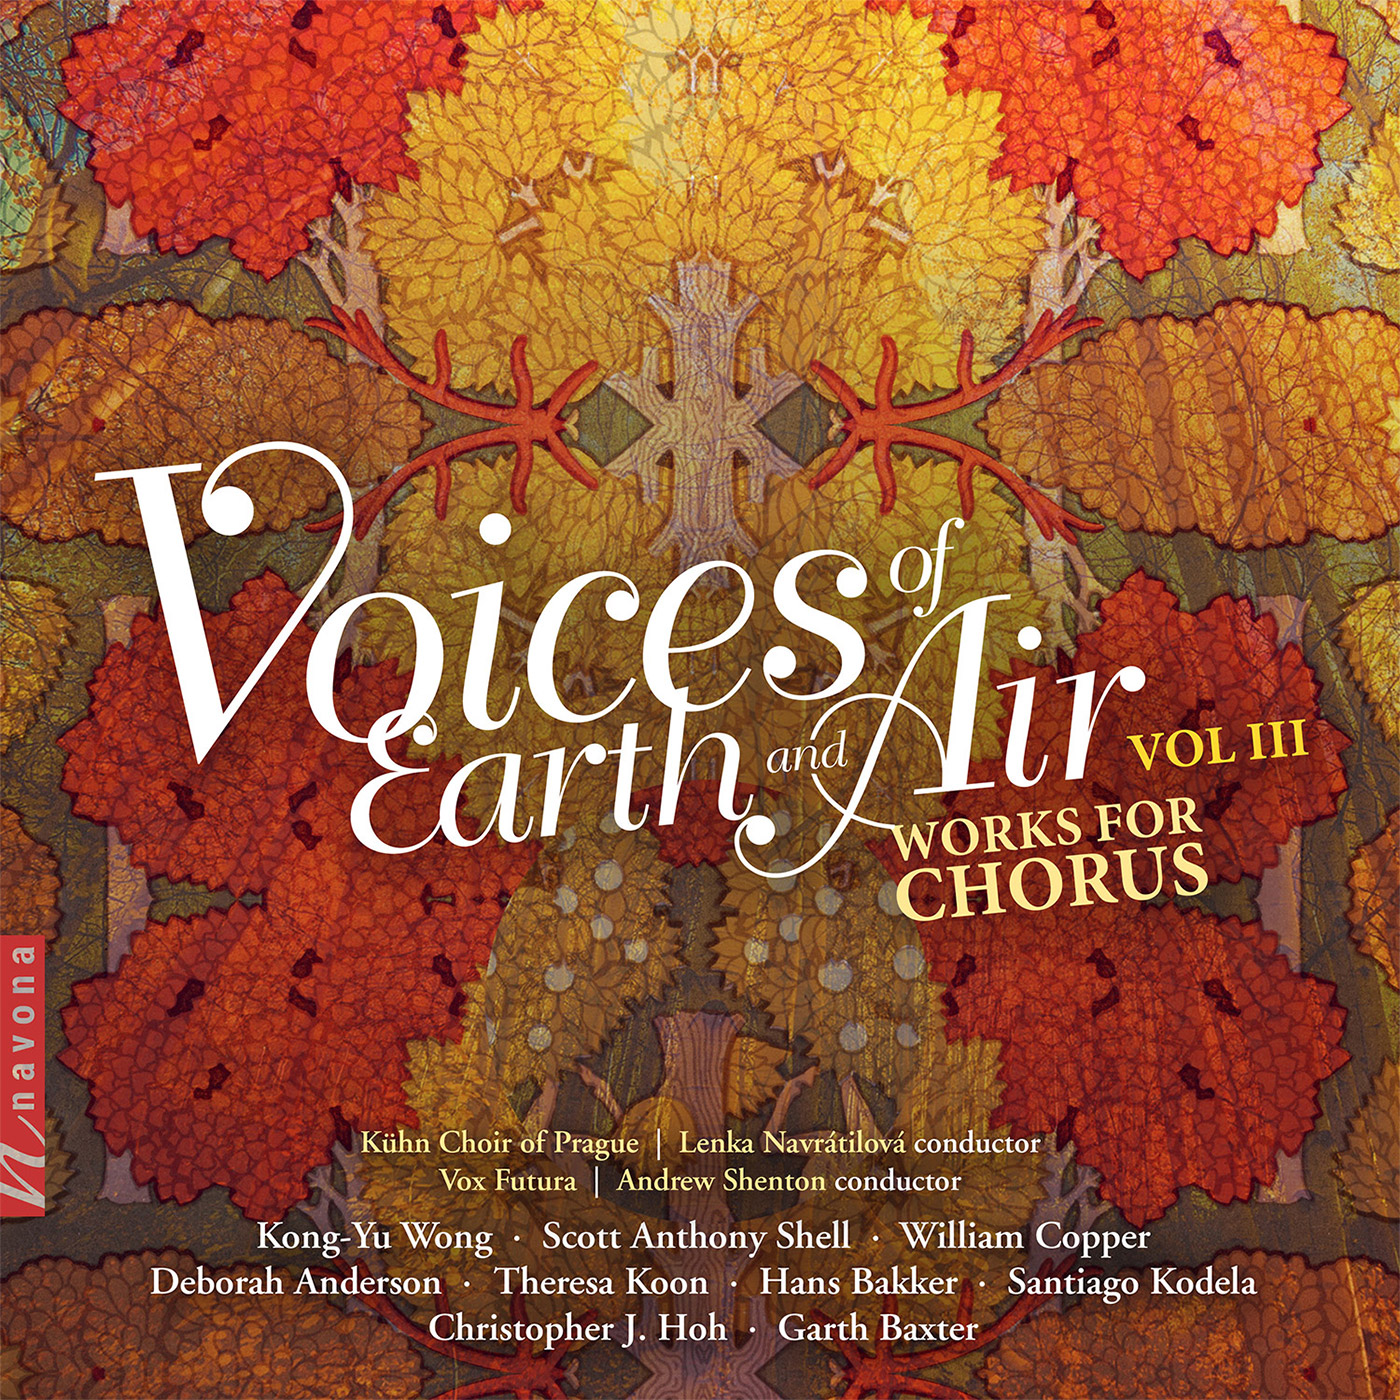 Voices of Earth and Air Vol. 3